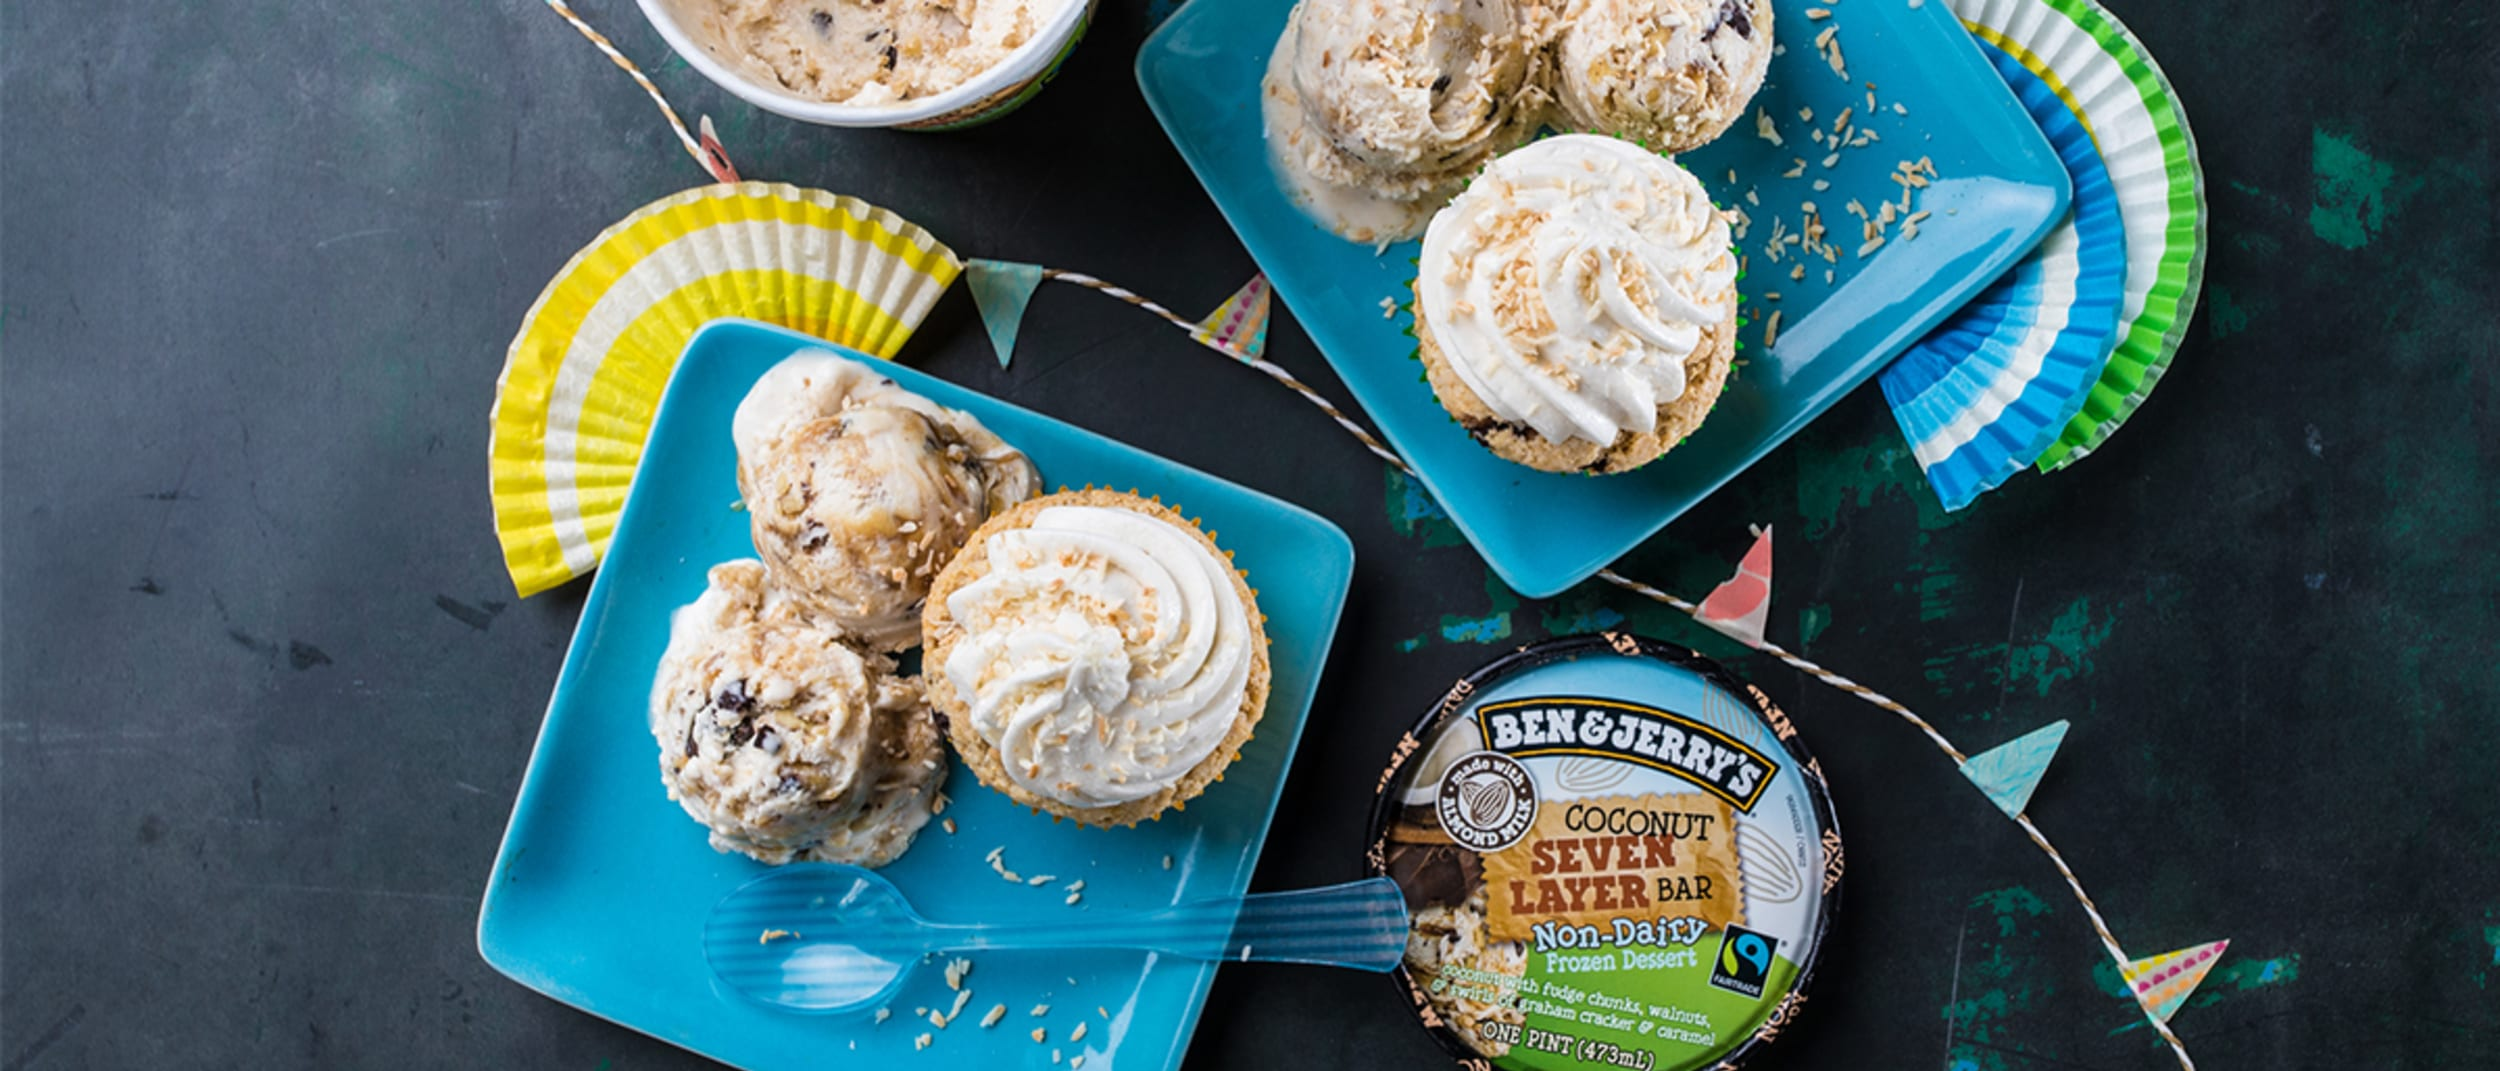 Ben & Jerry's new non-dairy dessert delights for ice cream